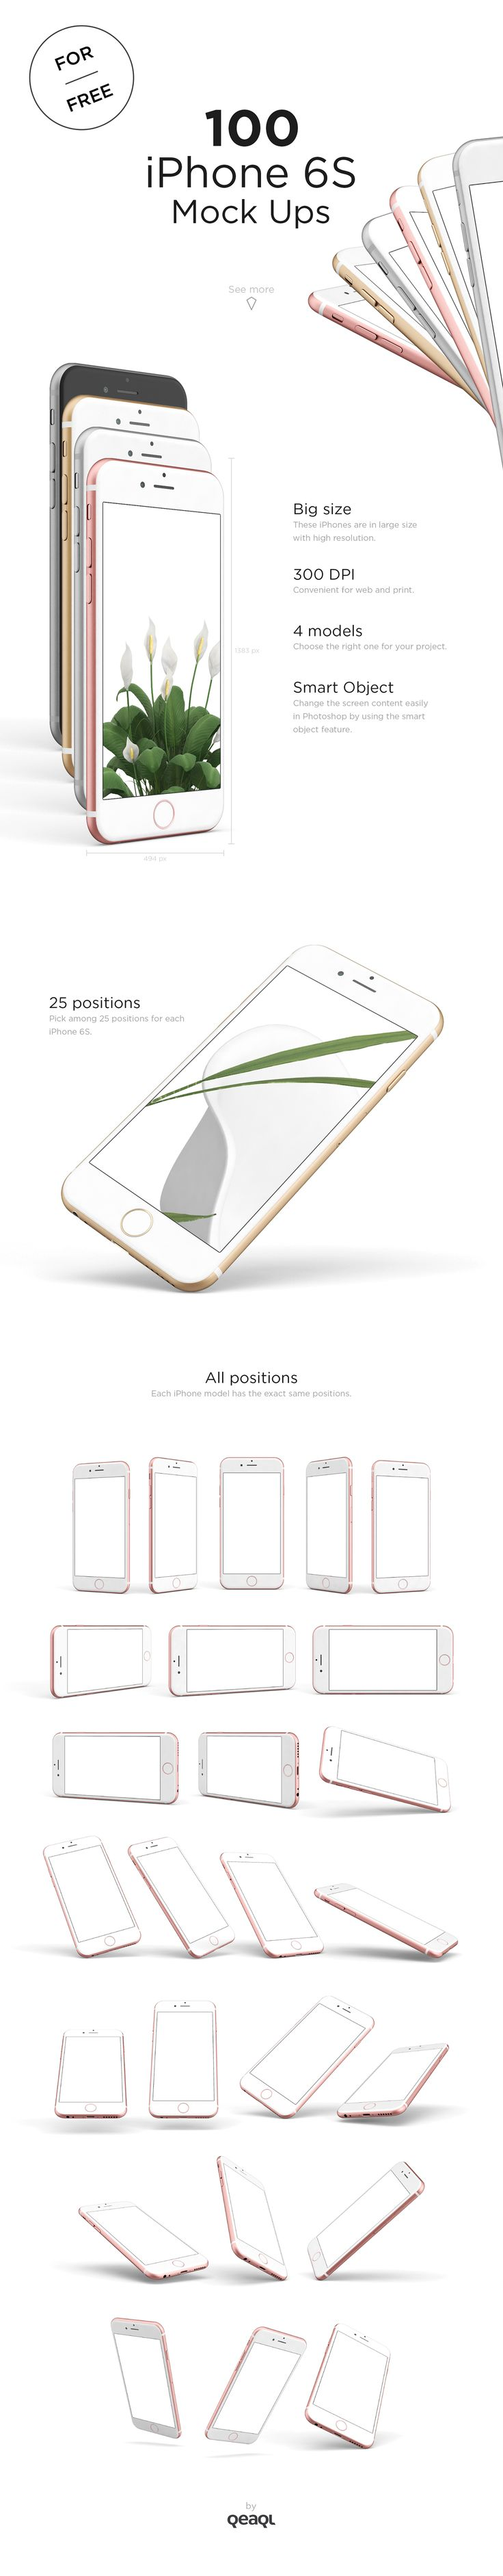 FREE - 100 iPhone 6s Mock Ups on Behance